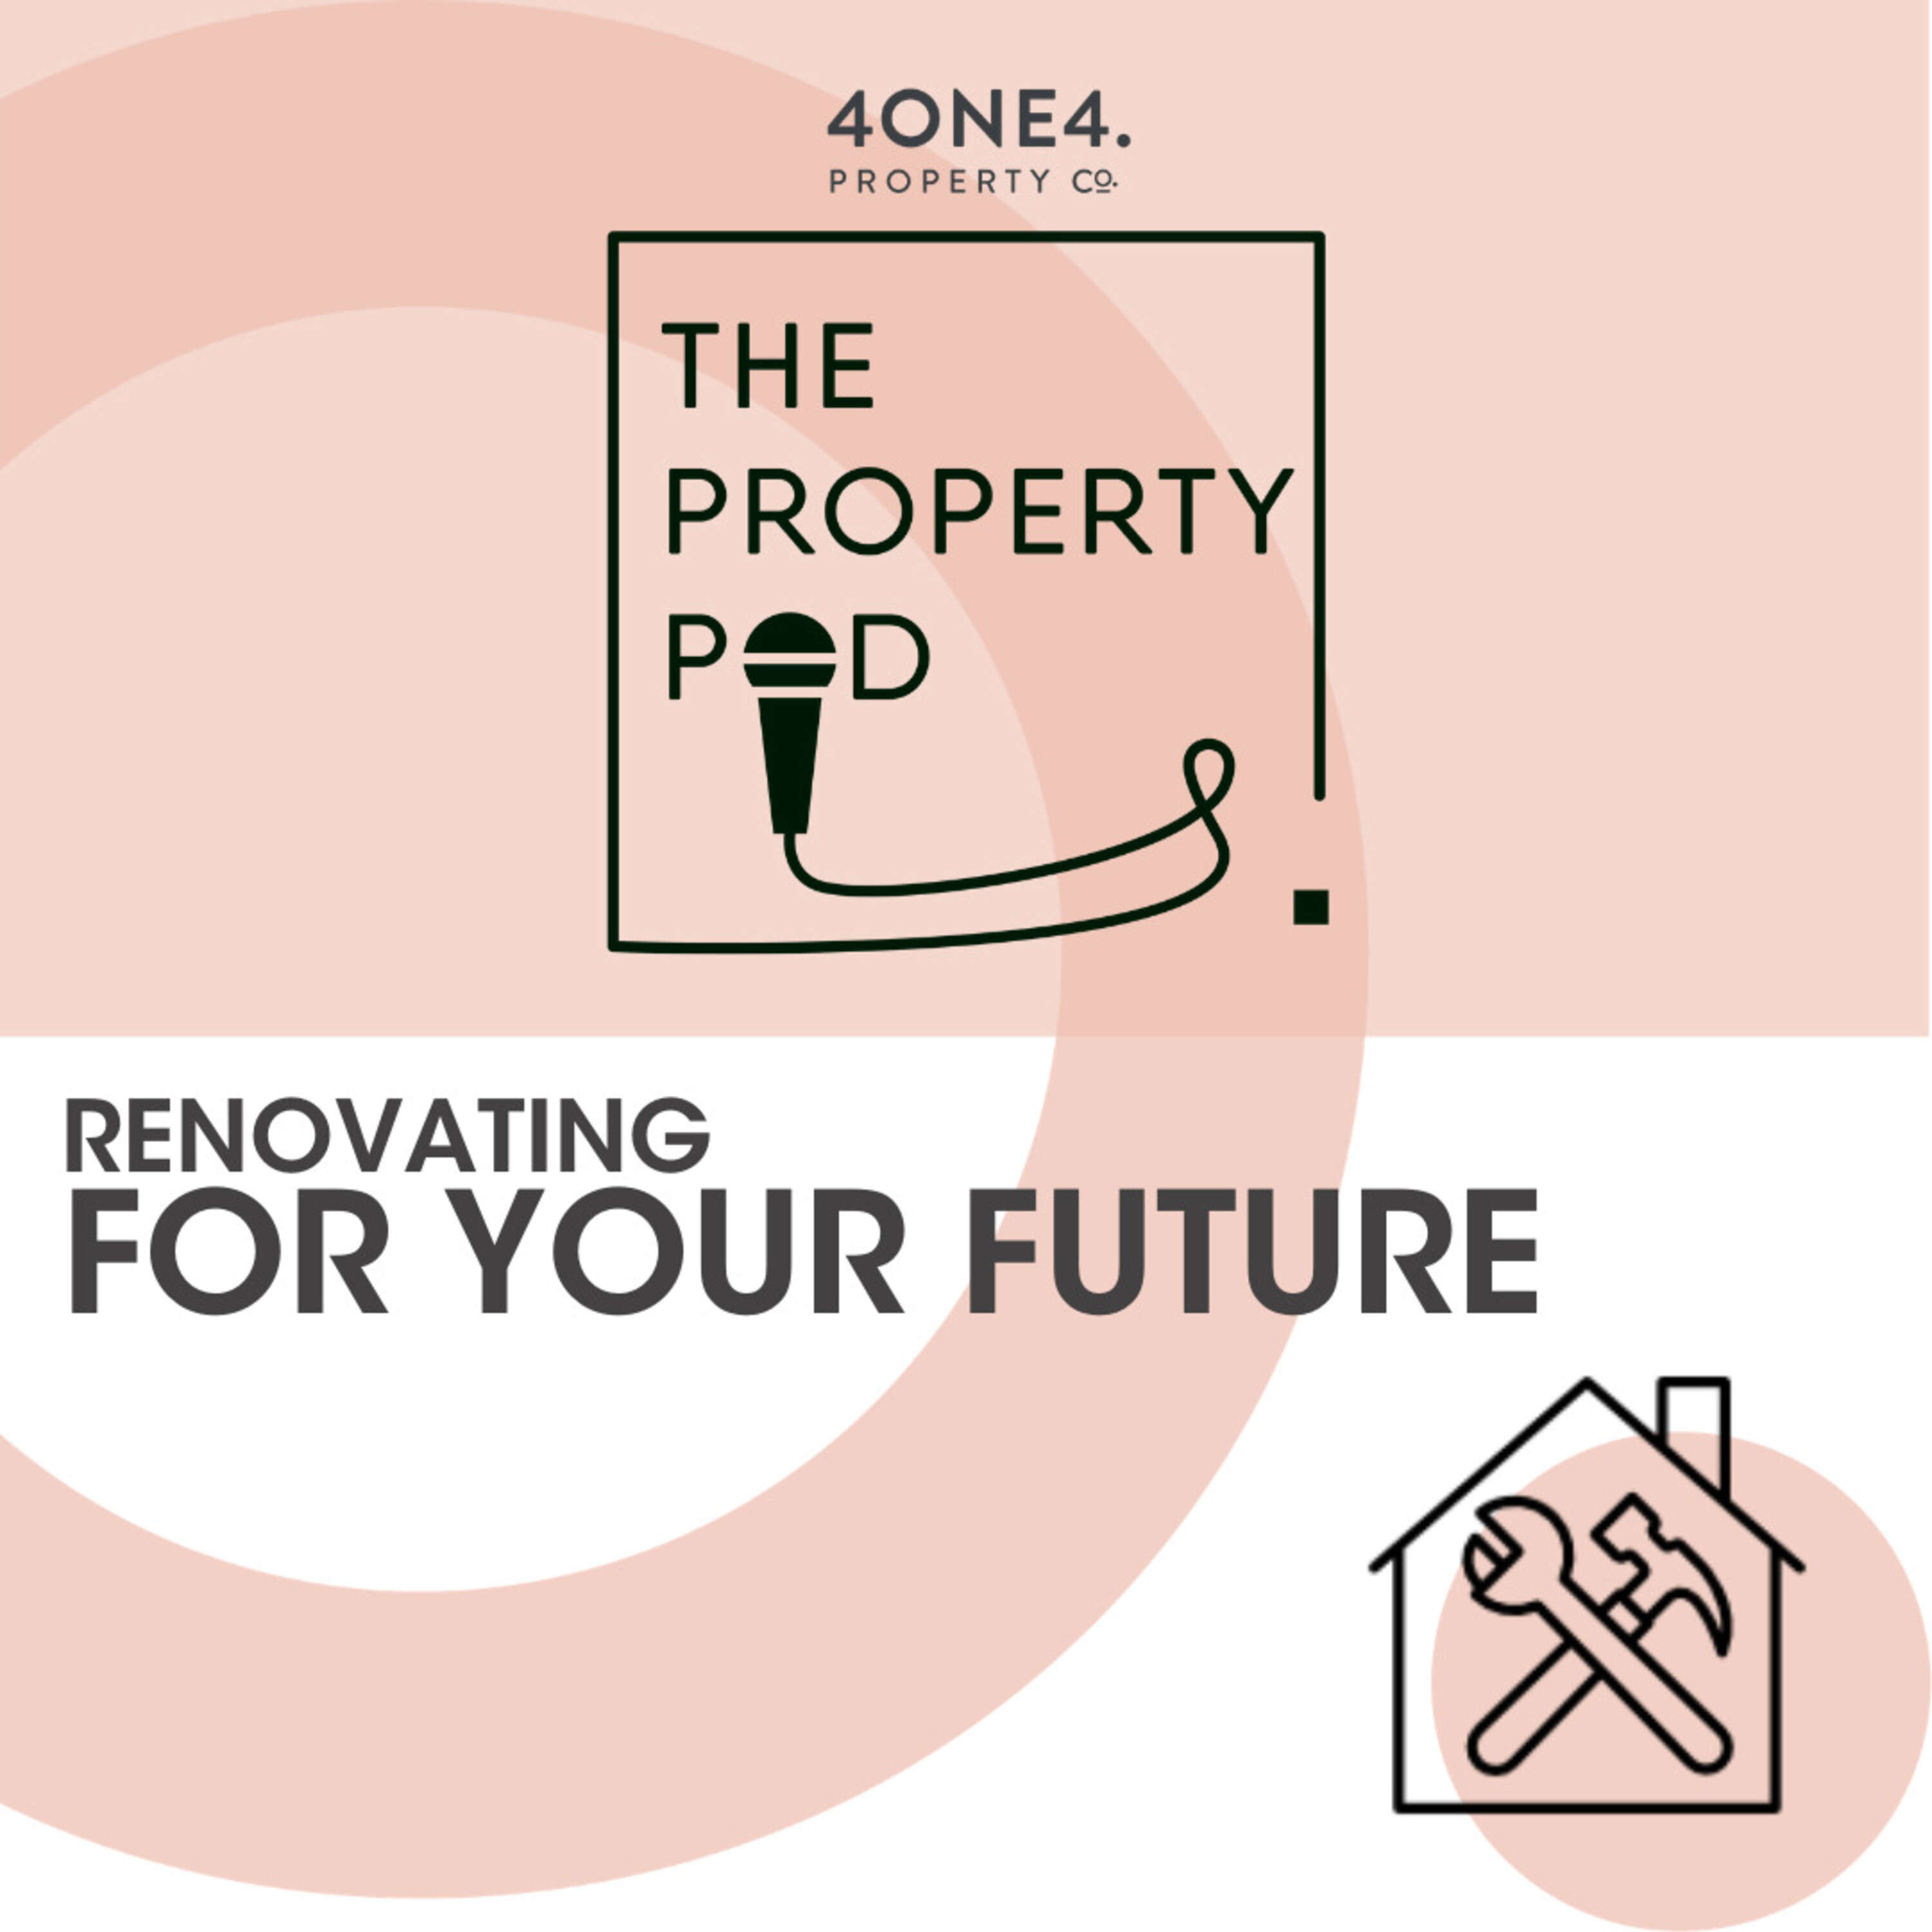 Renovating for your future